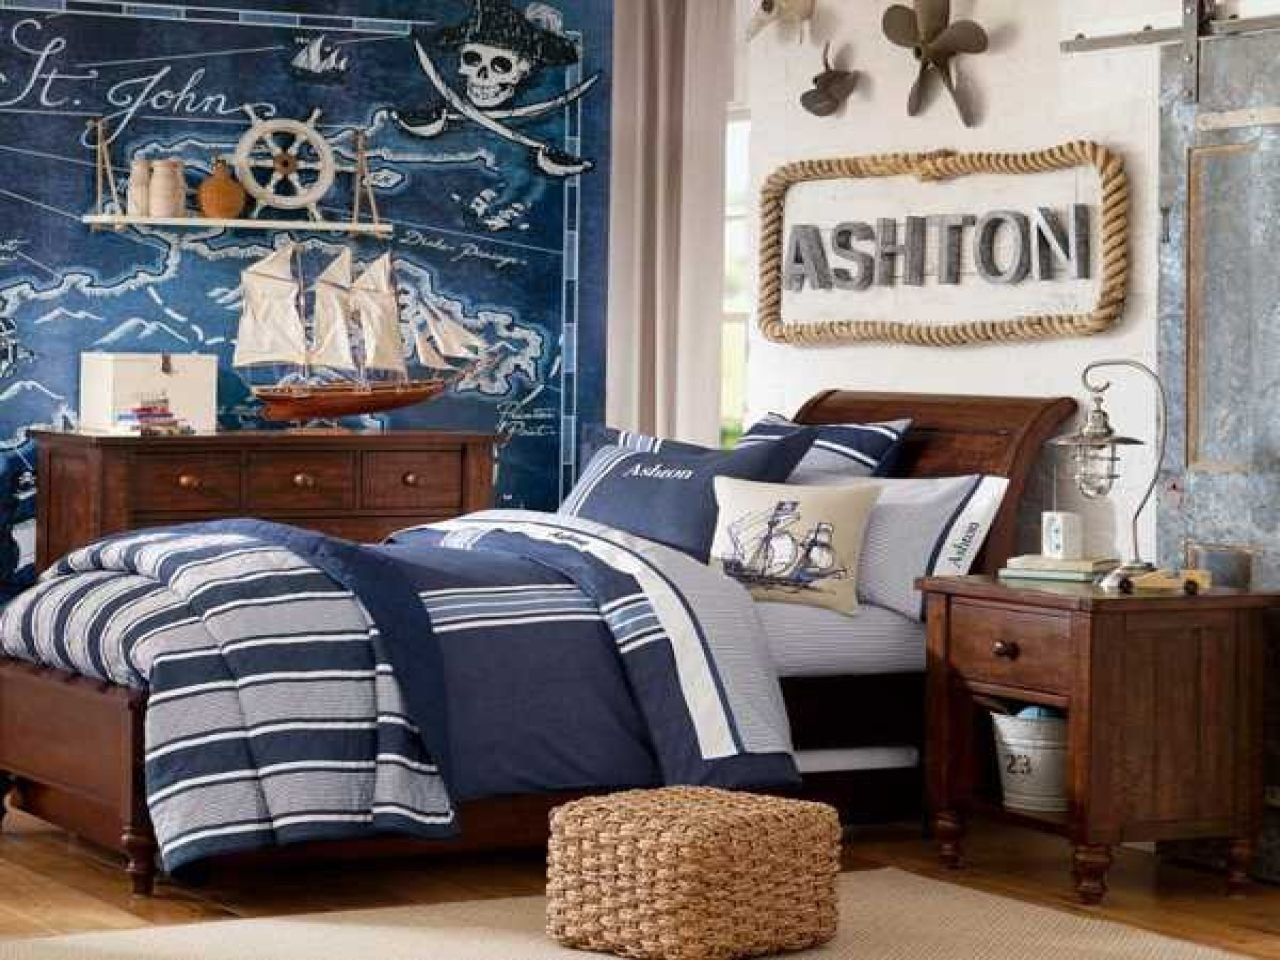 Best Barn Boy Furniture Pottery Barn Boys Room Ideas Excellent With Pictures